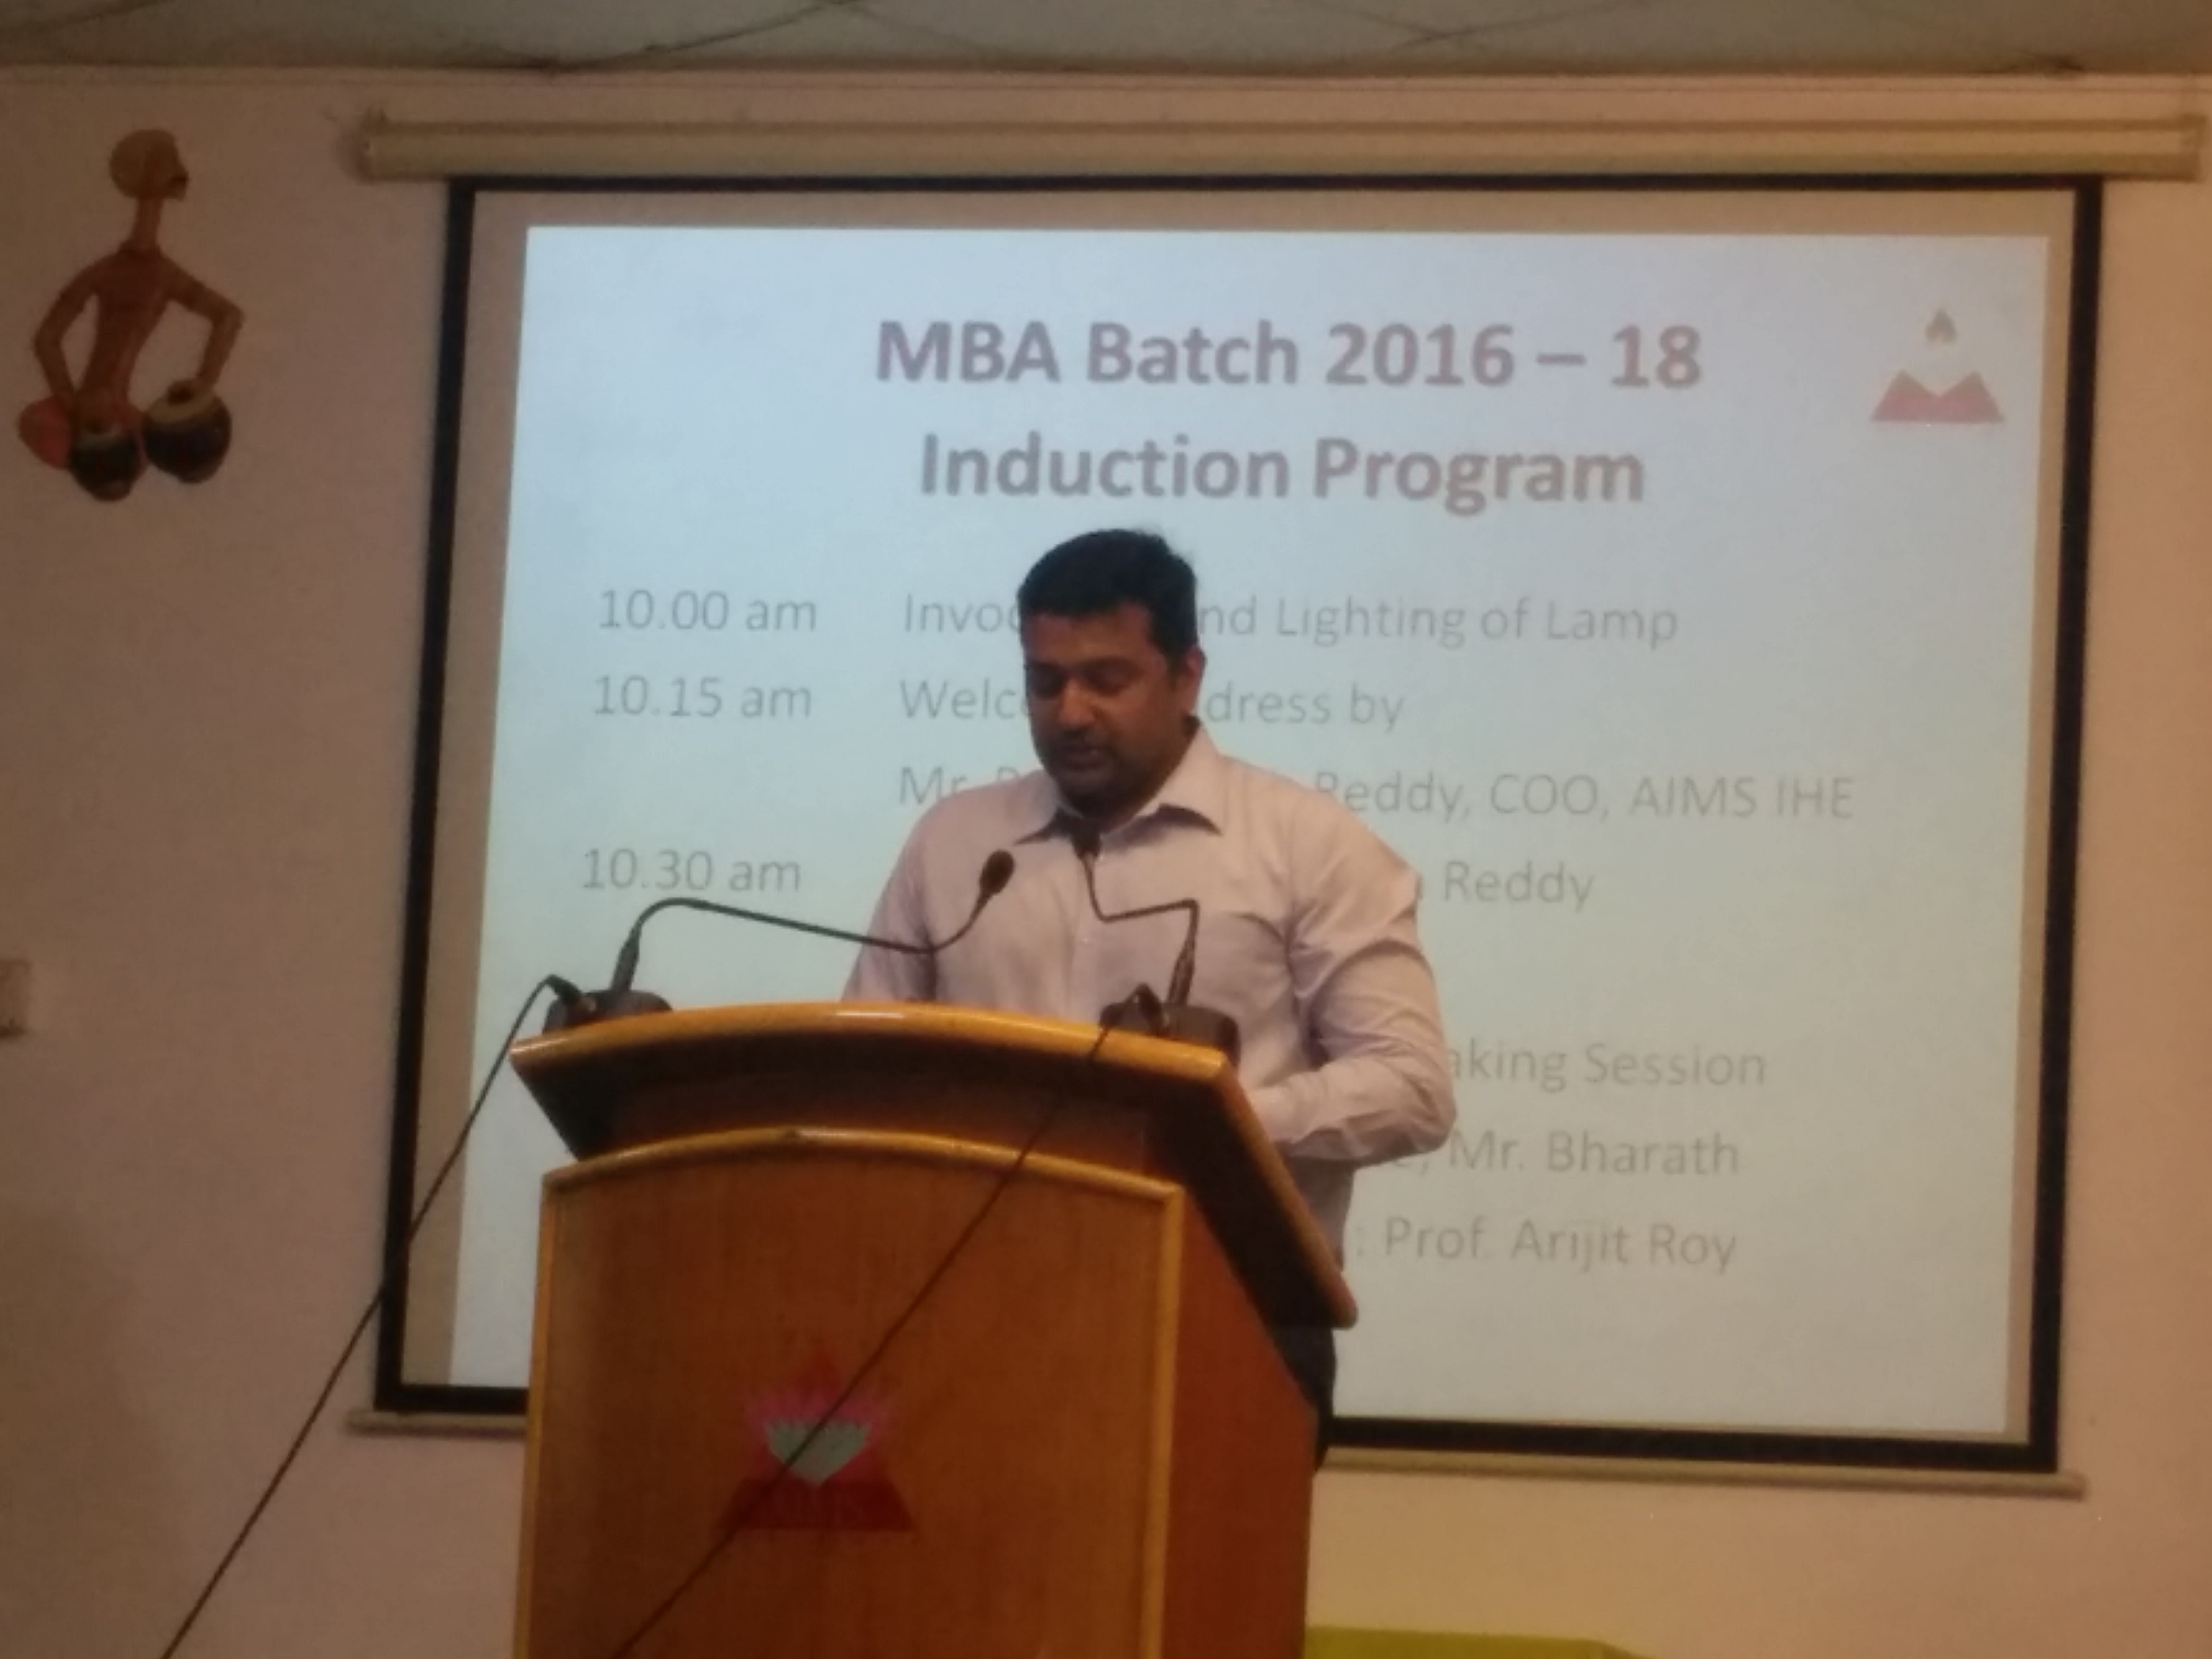 MBA BATCH WELCOME